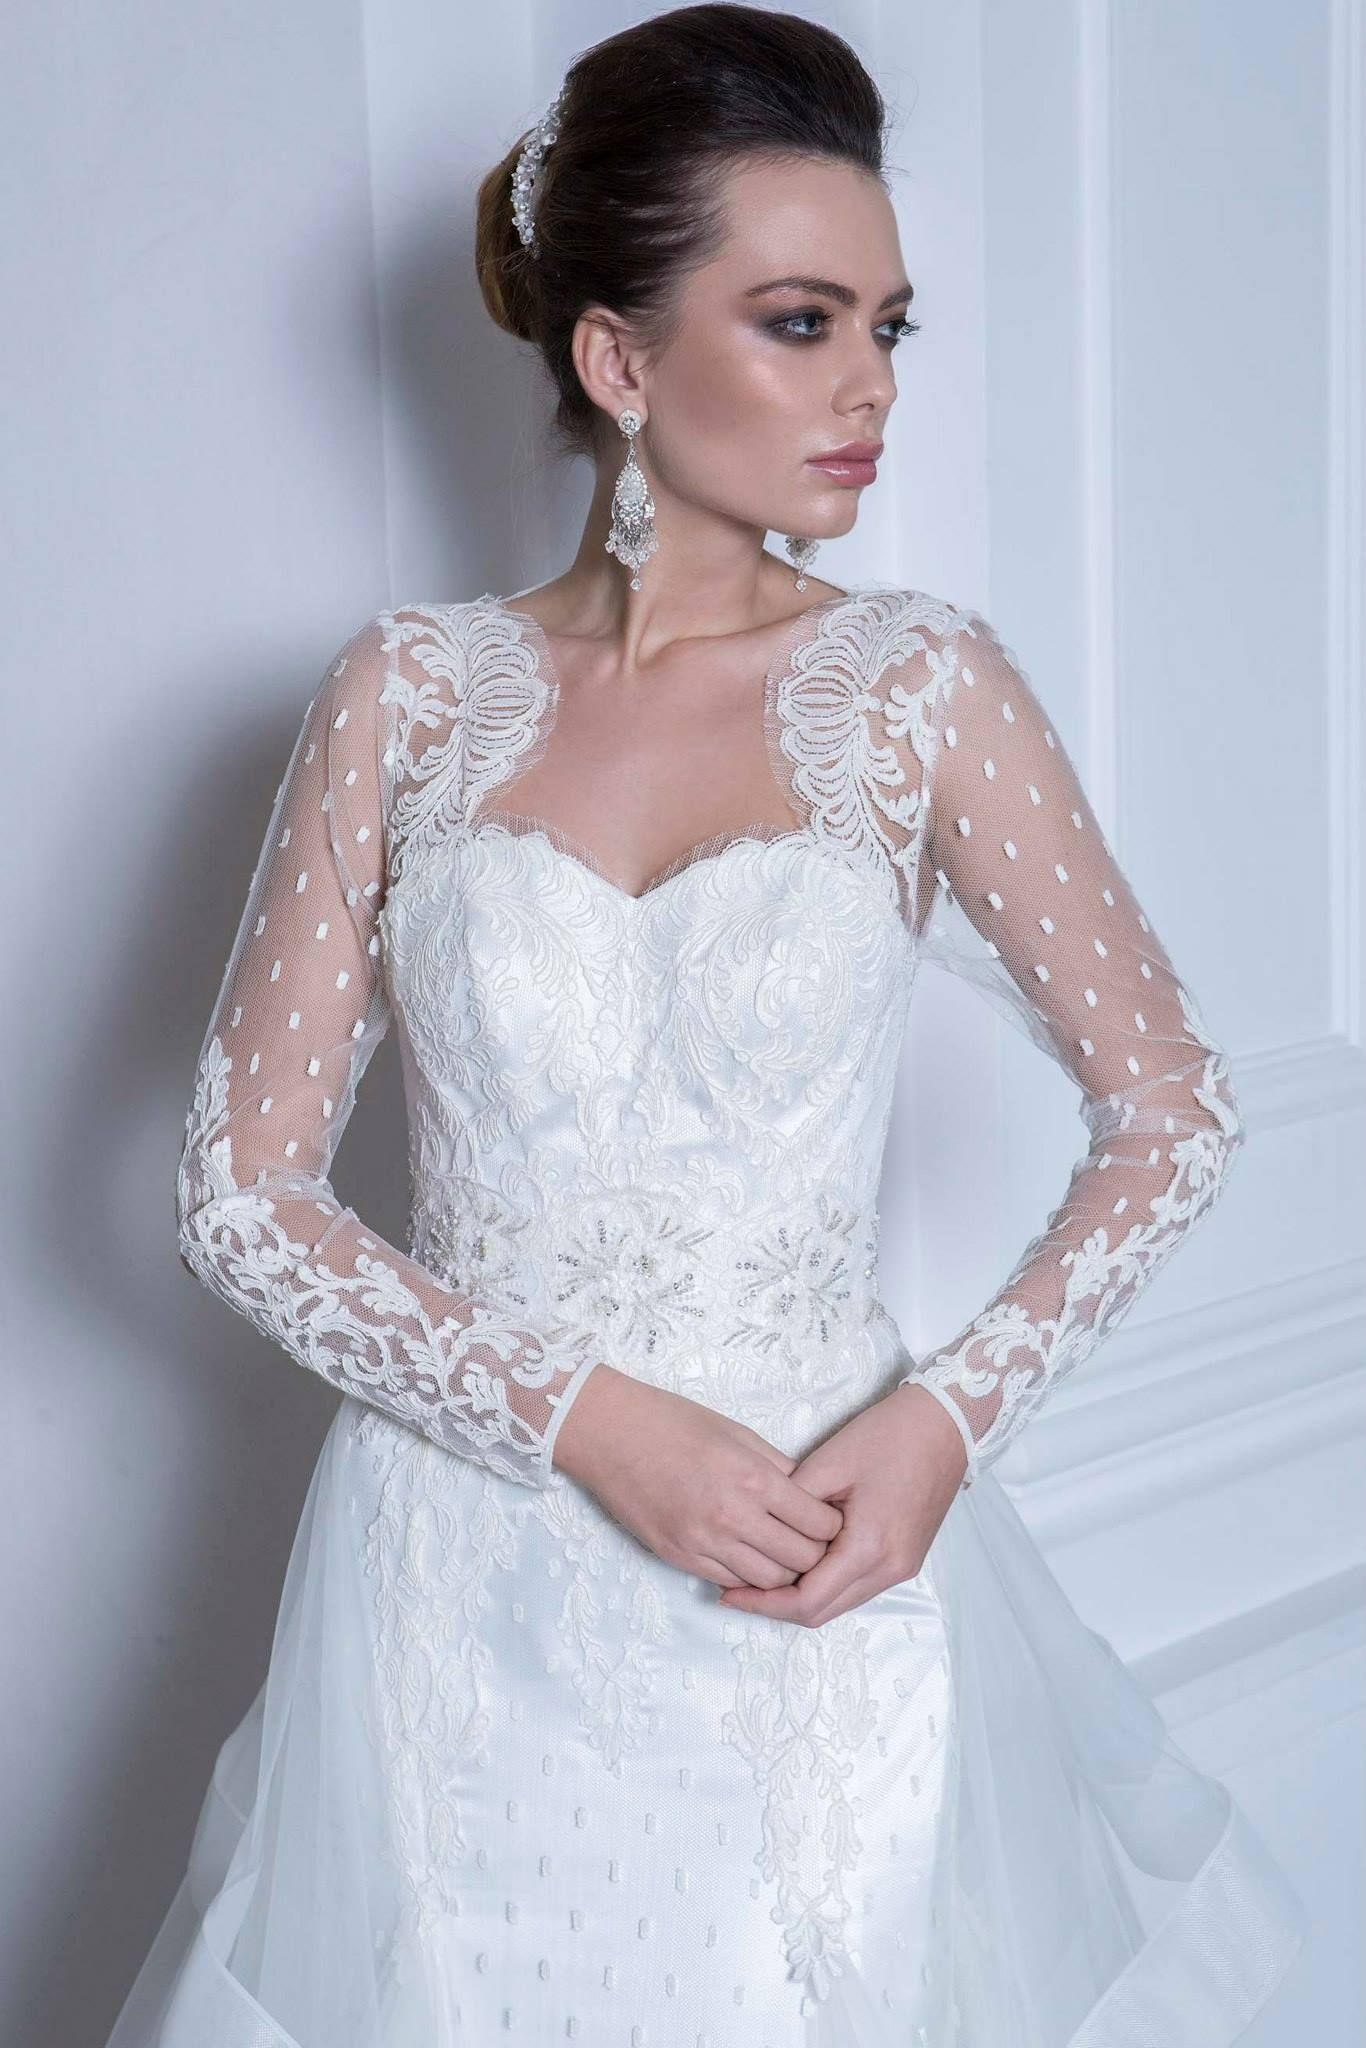 1500 141 Romantique Collection By Andree Salon Photographer